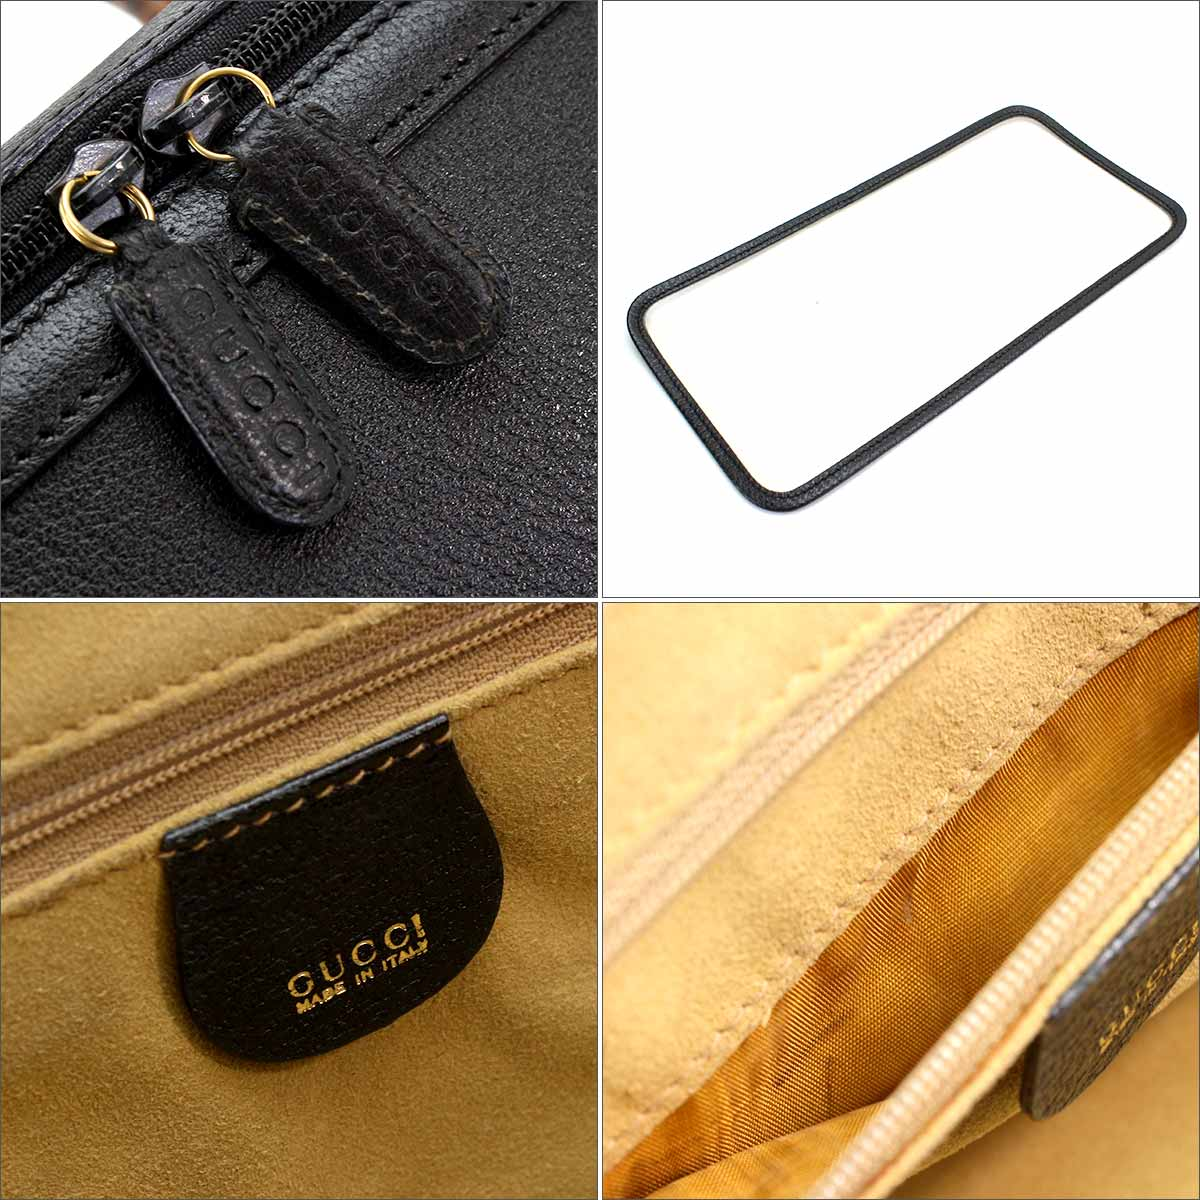 a5cf65bb290a ... With Gucci GUCCI bamboo side type vanity 2WAY hand shoulder bag leather  black 013 122 2491 ...